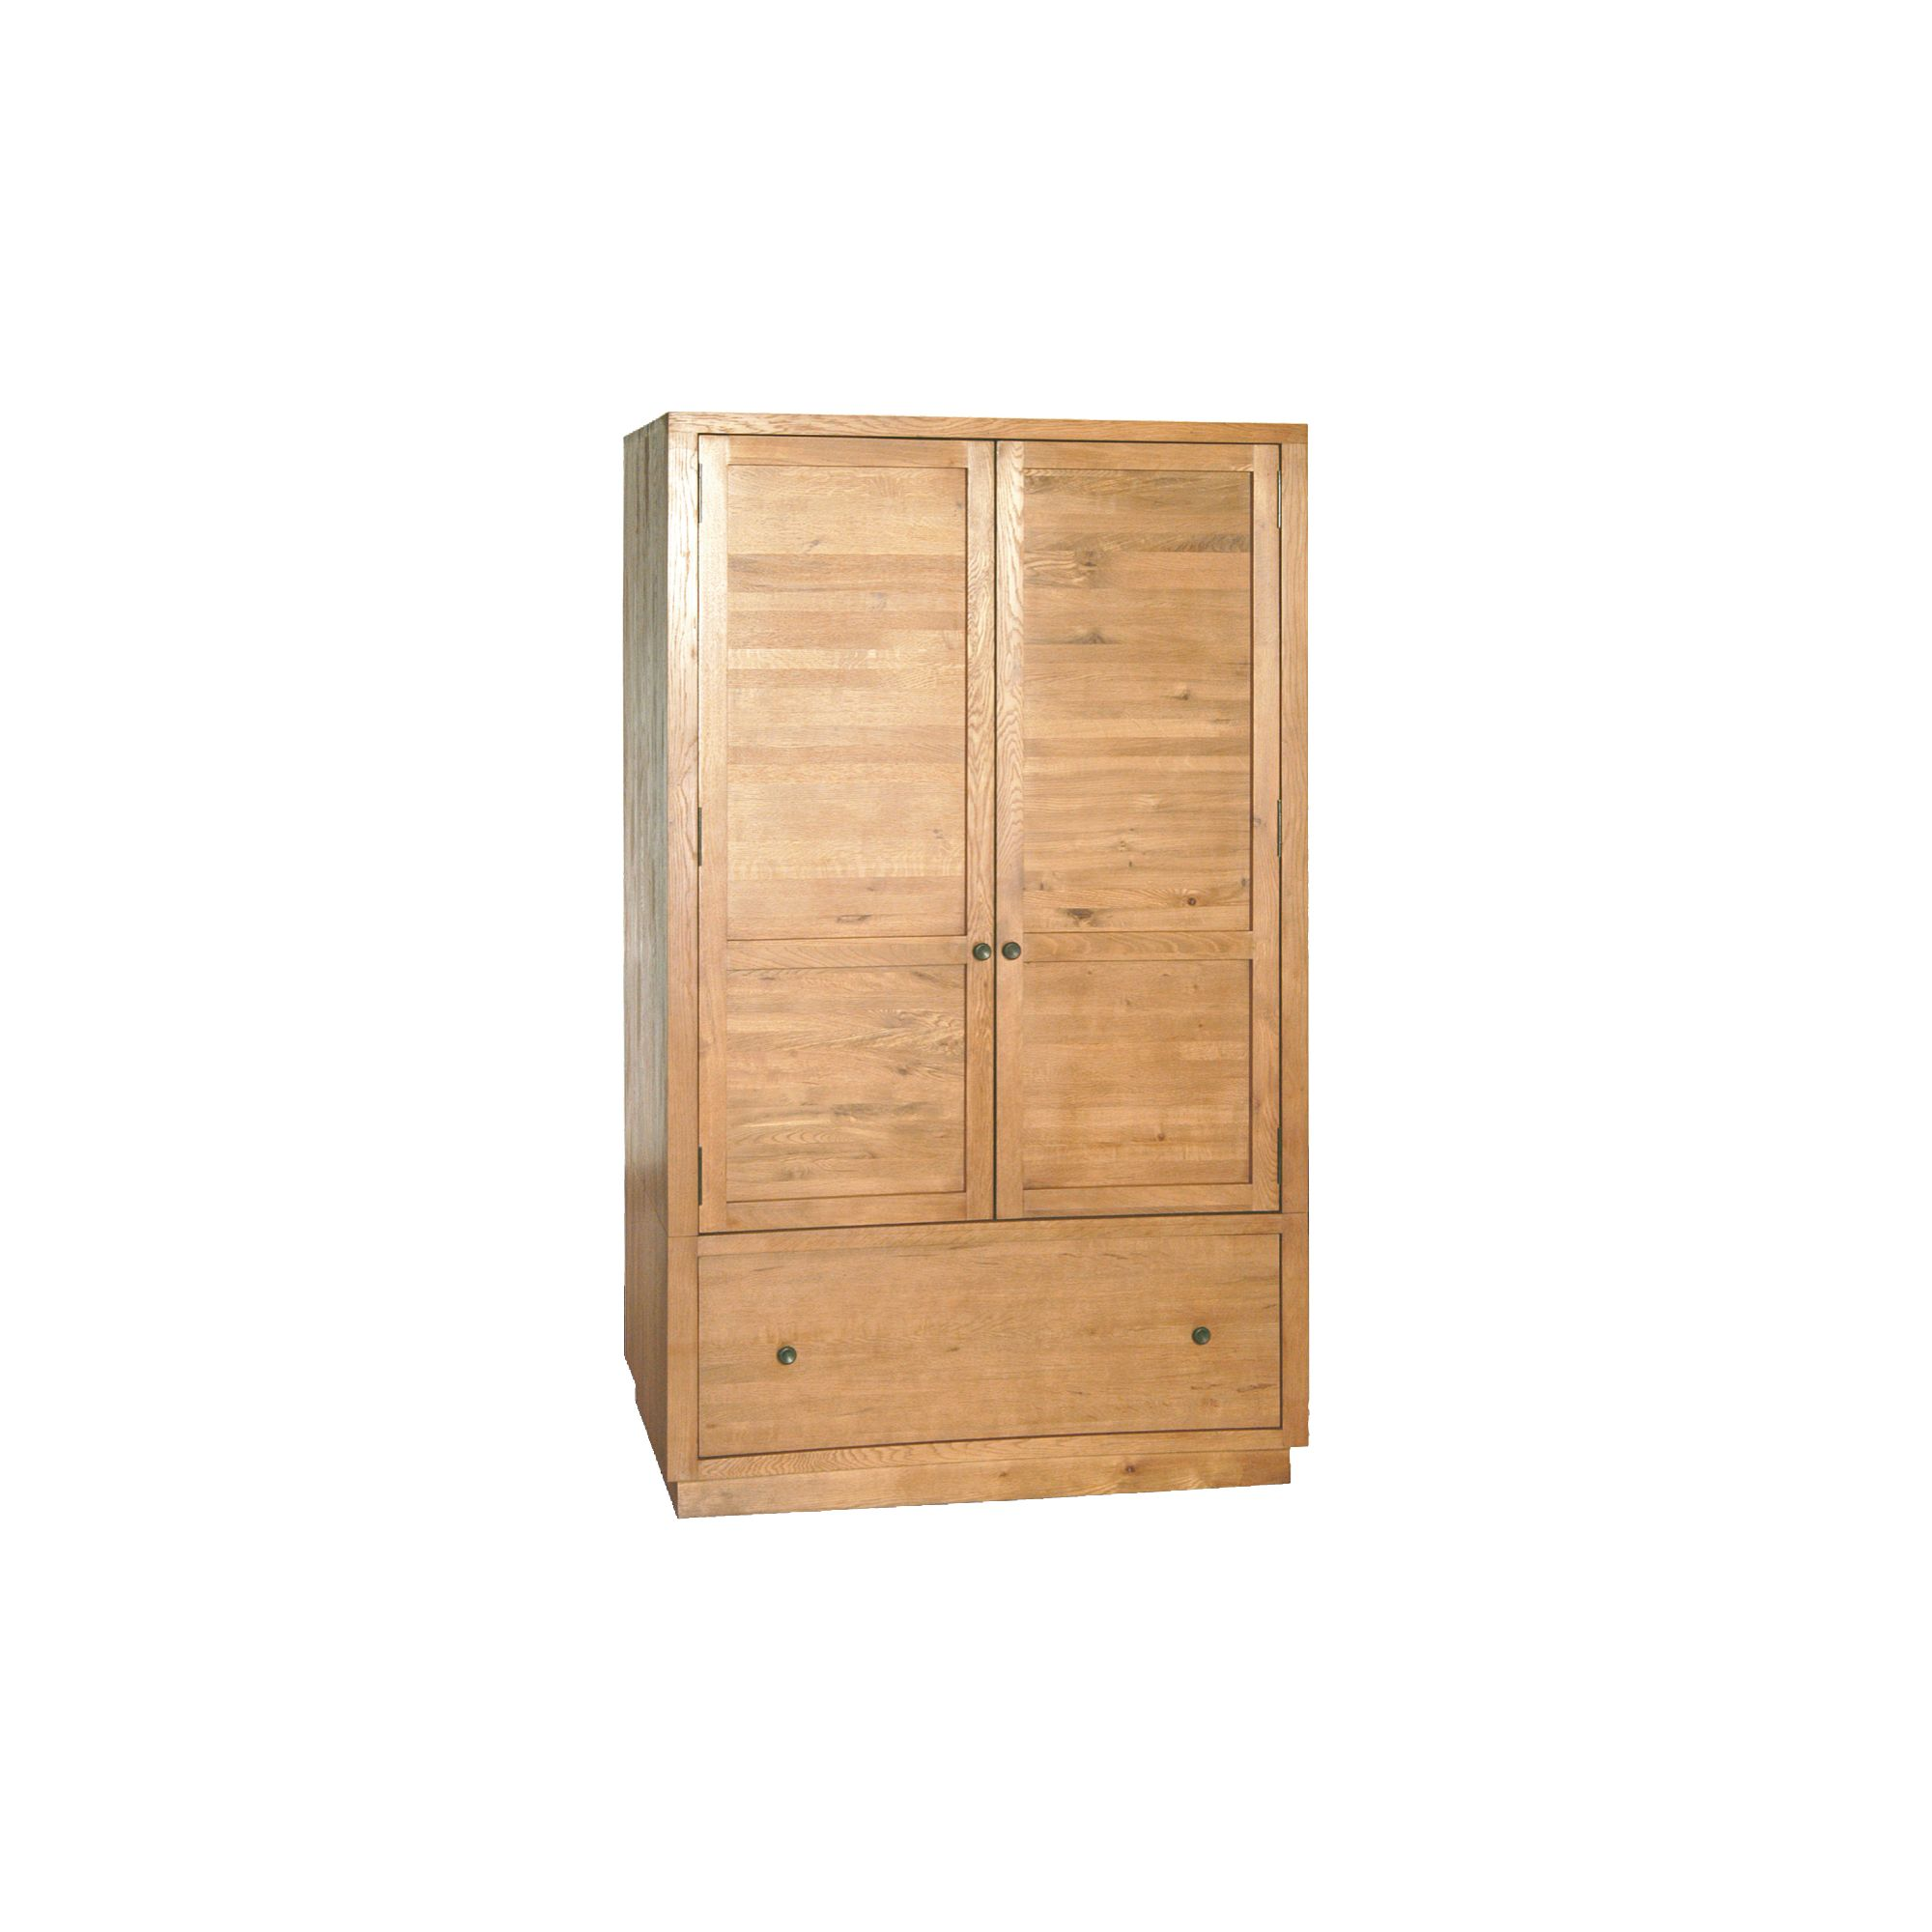 Oceans Apart Orleans Oak One Drawer Wardrobe in Solid American Oak at Tesco Direct